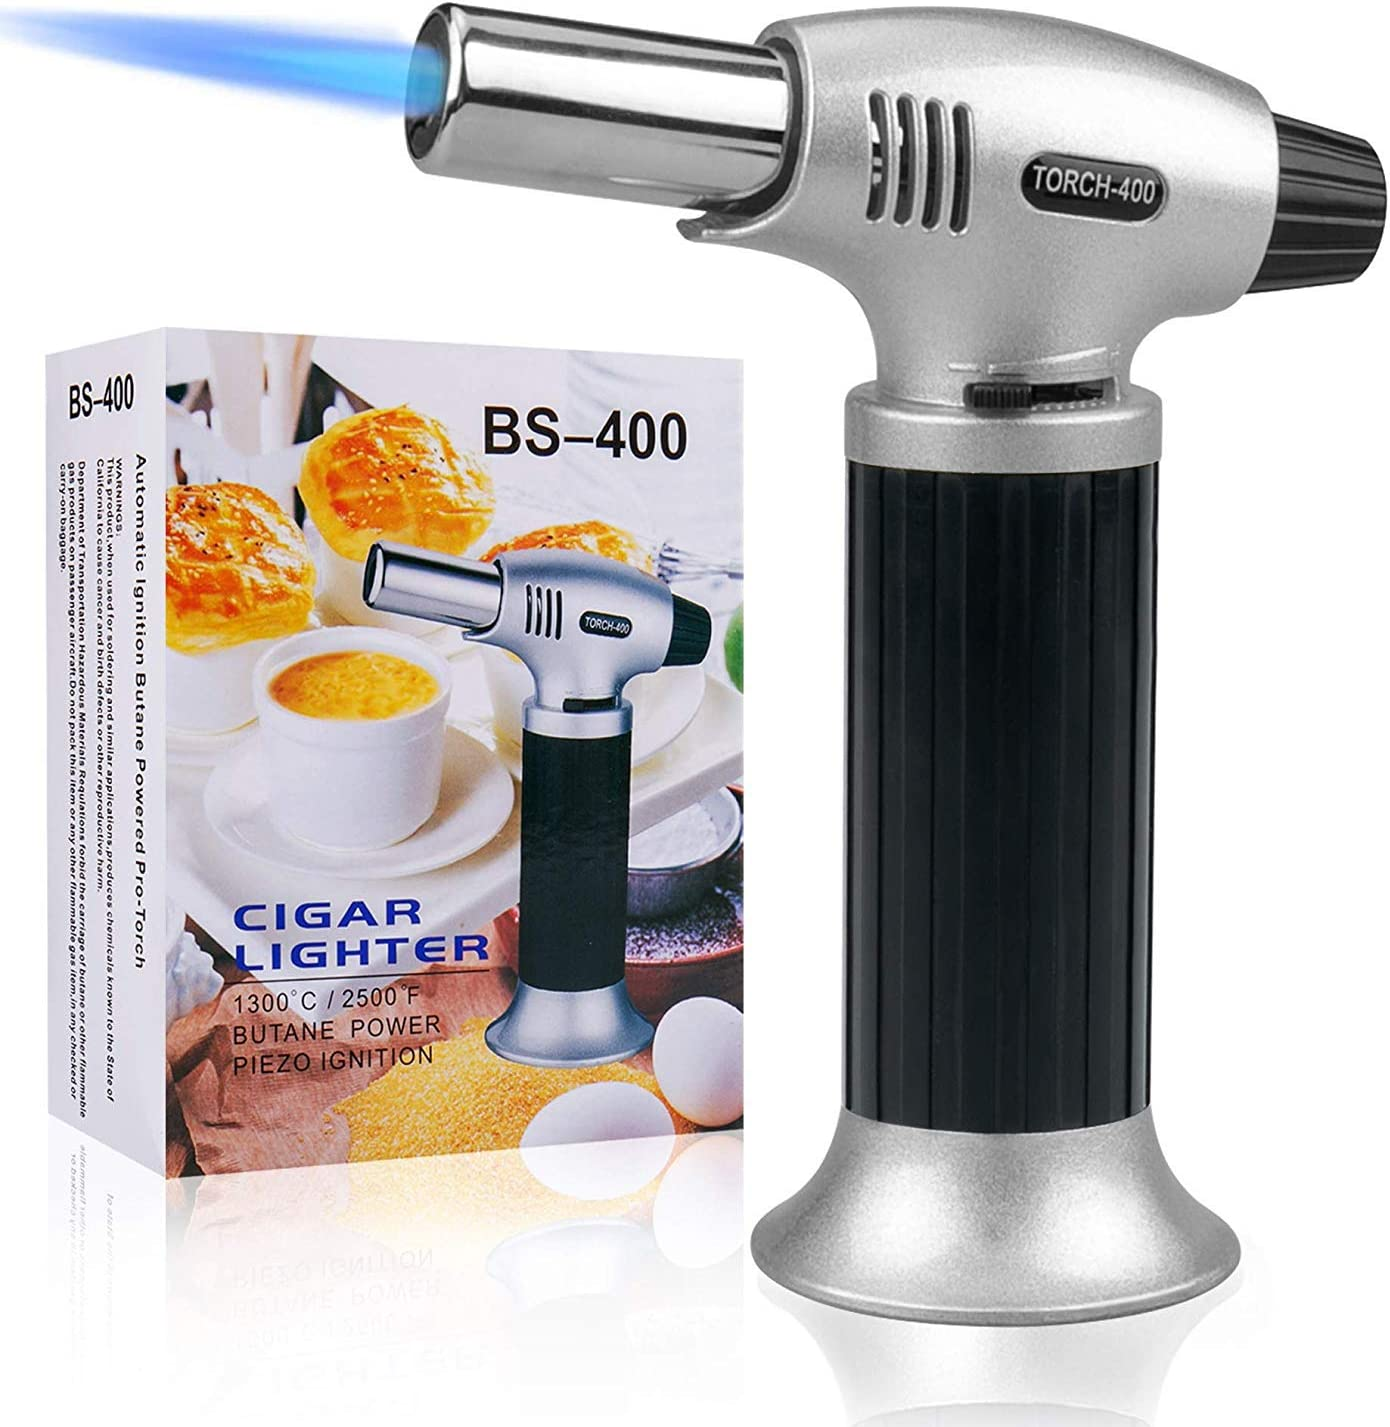 AOHEZI Culinary Blow Torch, Tintec Chef Cooking Torch Lighter, Butane Refillable, Flame Adjustable (MAX 2500°F) with Safety Lock for Cooking, BBQ, Baking, Brulee, Creme, DIY Soldering & more